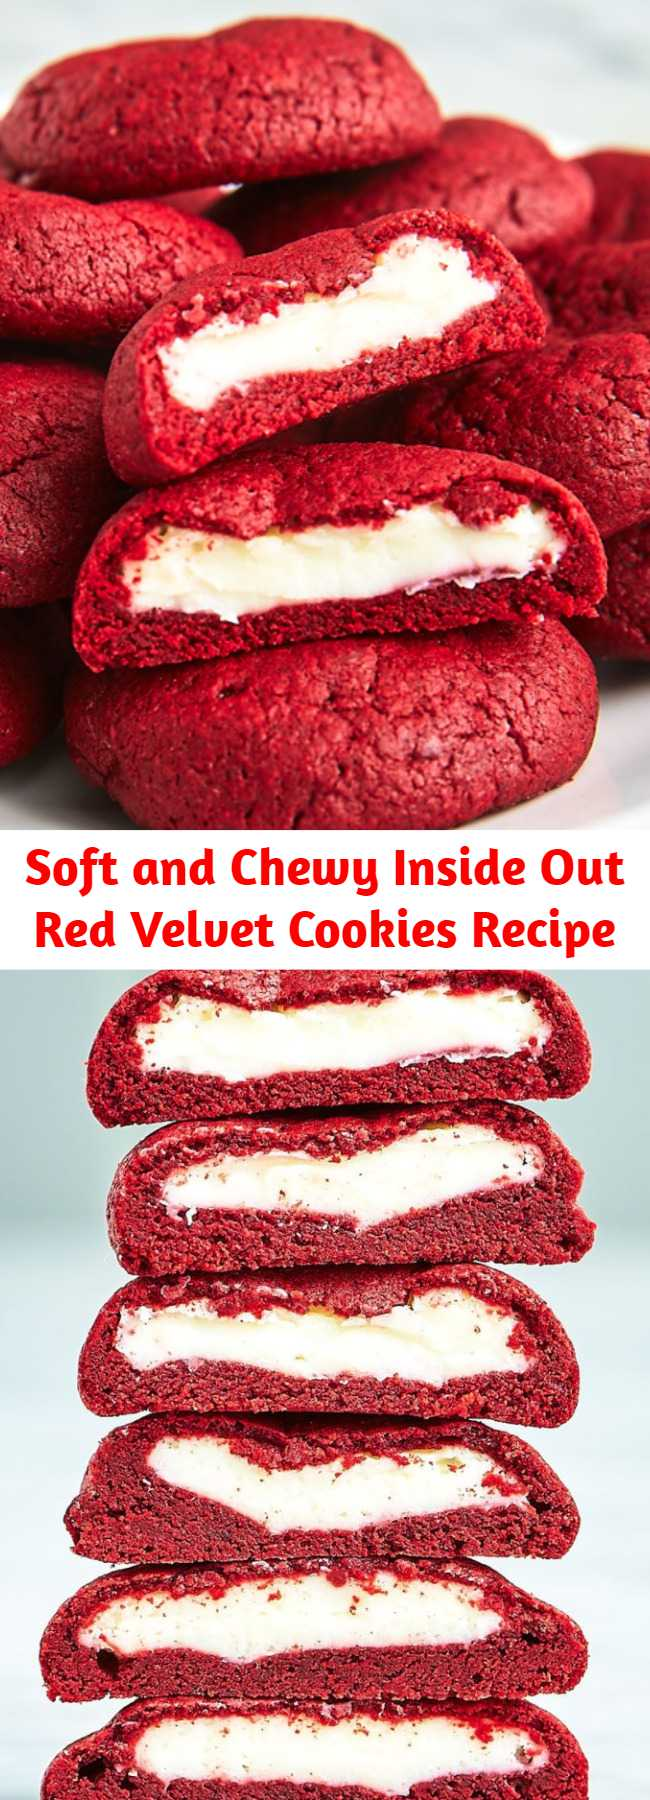 Soft and Chewy Inside Out Red Velvet Cookies Recipe - Get your Red Velvet Cake (frosting and all) in cookie form!  These irresistibly soft and chewy red velvet cookies stuffed with real deal cream cheese frosting, are pretty amazing!